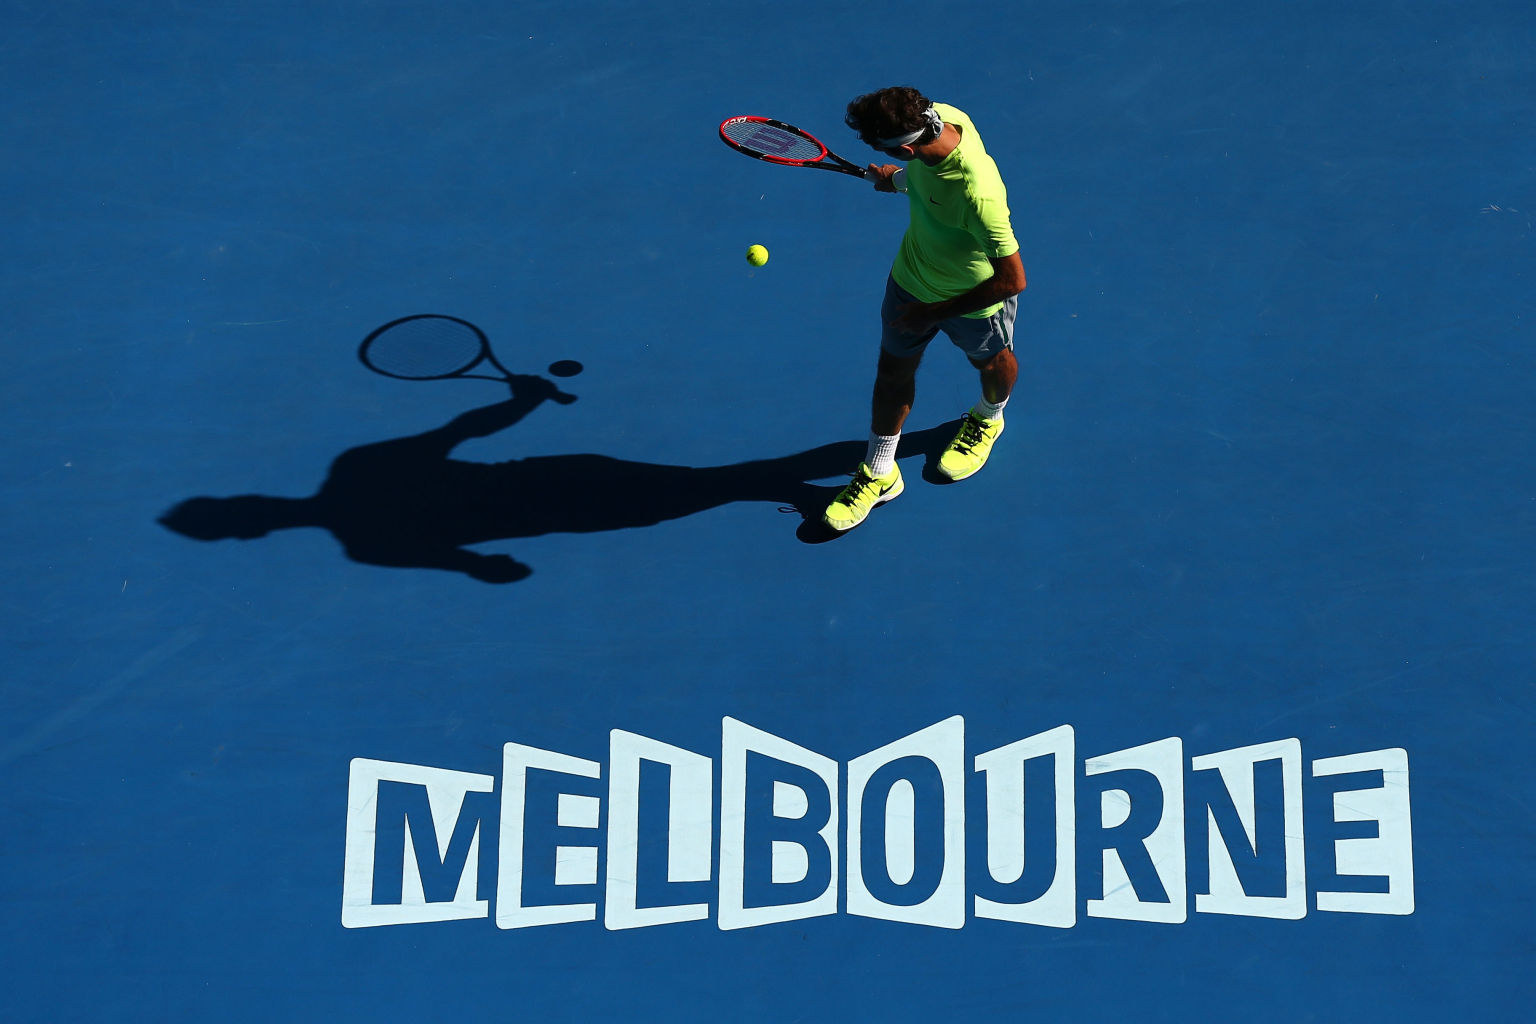 XXX of ZZZZ plays a forehand in his/her third round match against XXXX of ZZZZZ during day five of the 2015 Australian Open at Melbourne Park on January 23, 2015 in Melbourne, Australia.